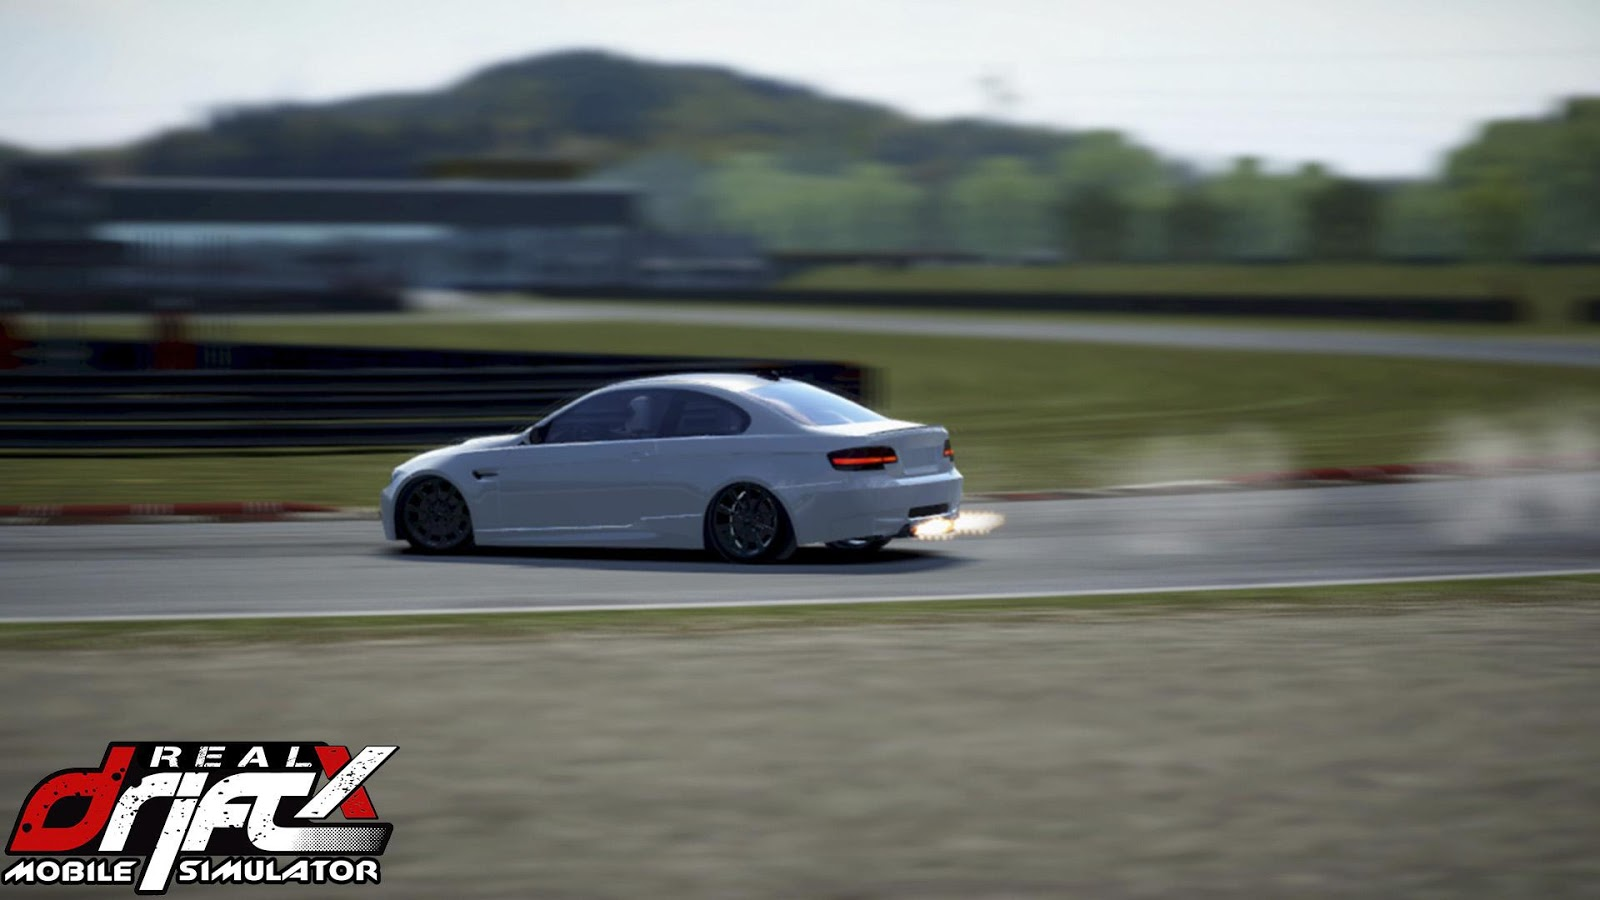 Real Drift X Car Racing Screenshot 13